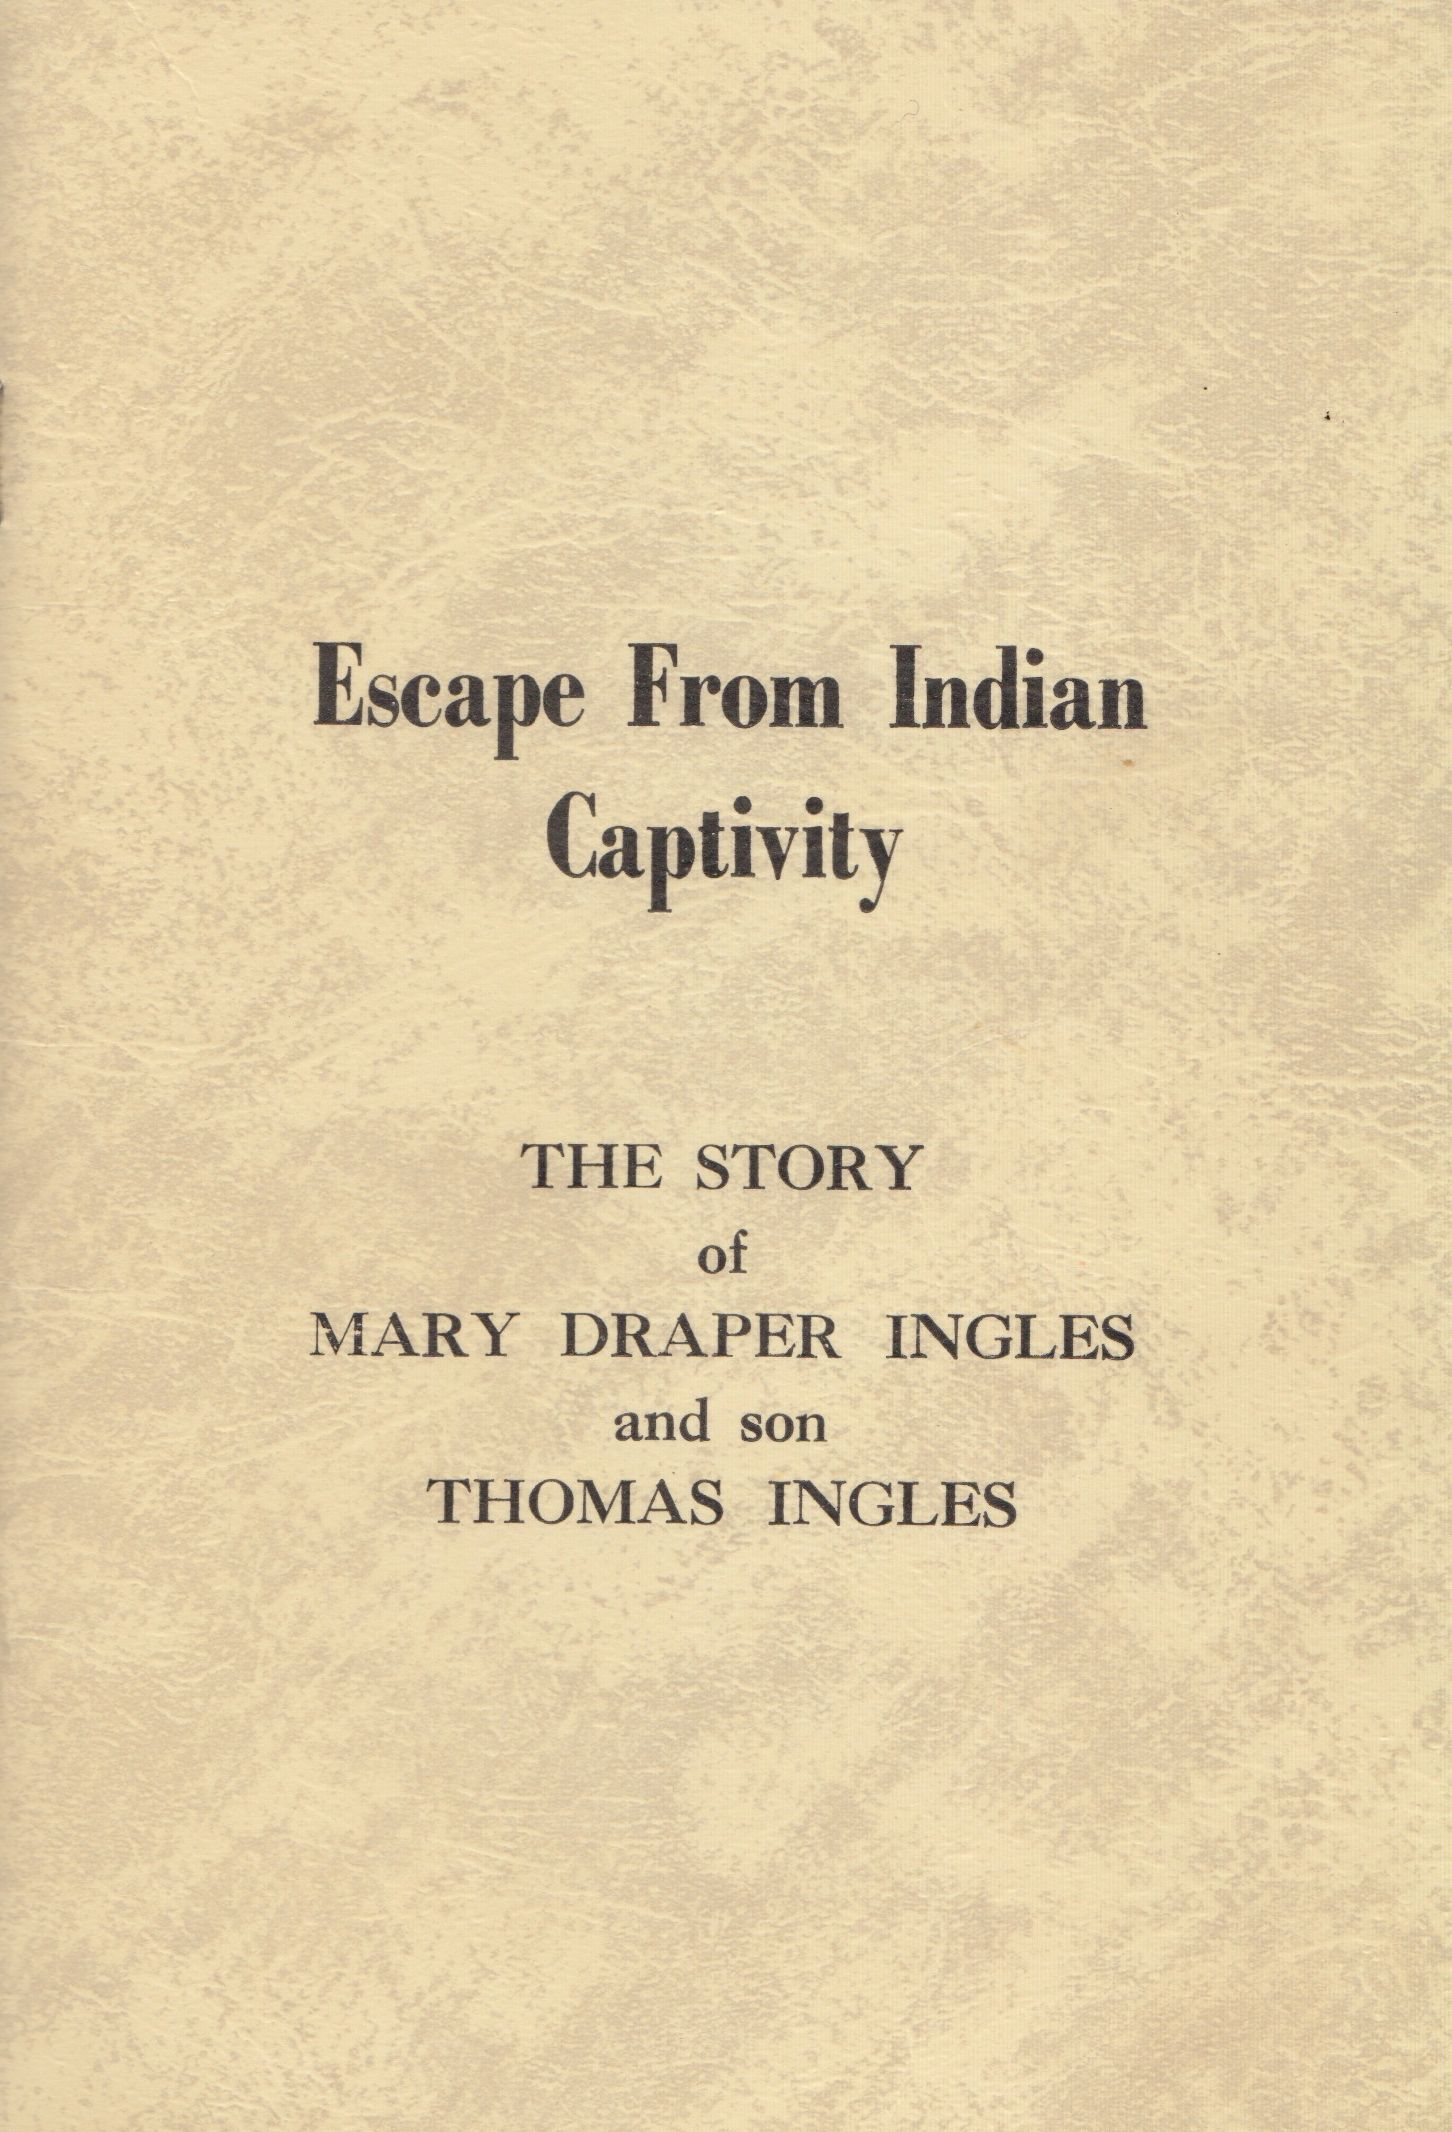 Cover of the first edition of Escape from Indian Captivity: The Story of Mary Draper Ingles and son Thomas Ingles, 1969. (E87 .I53 1969. Gift of Mrs. R. I. Steele. Image by Petrina Jackson)